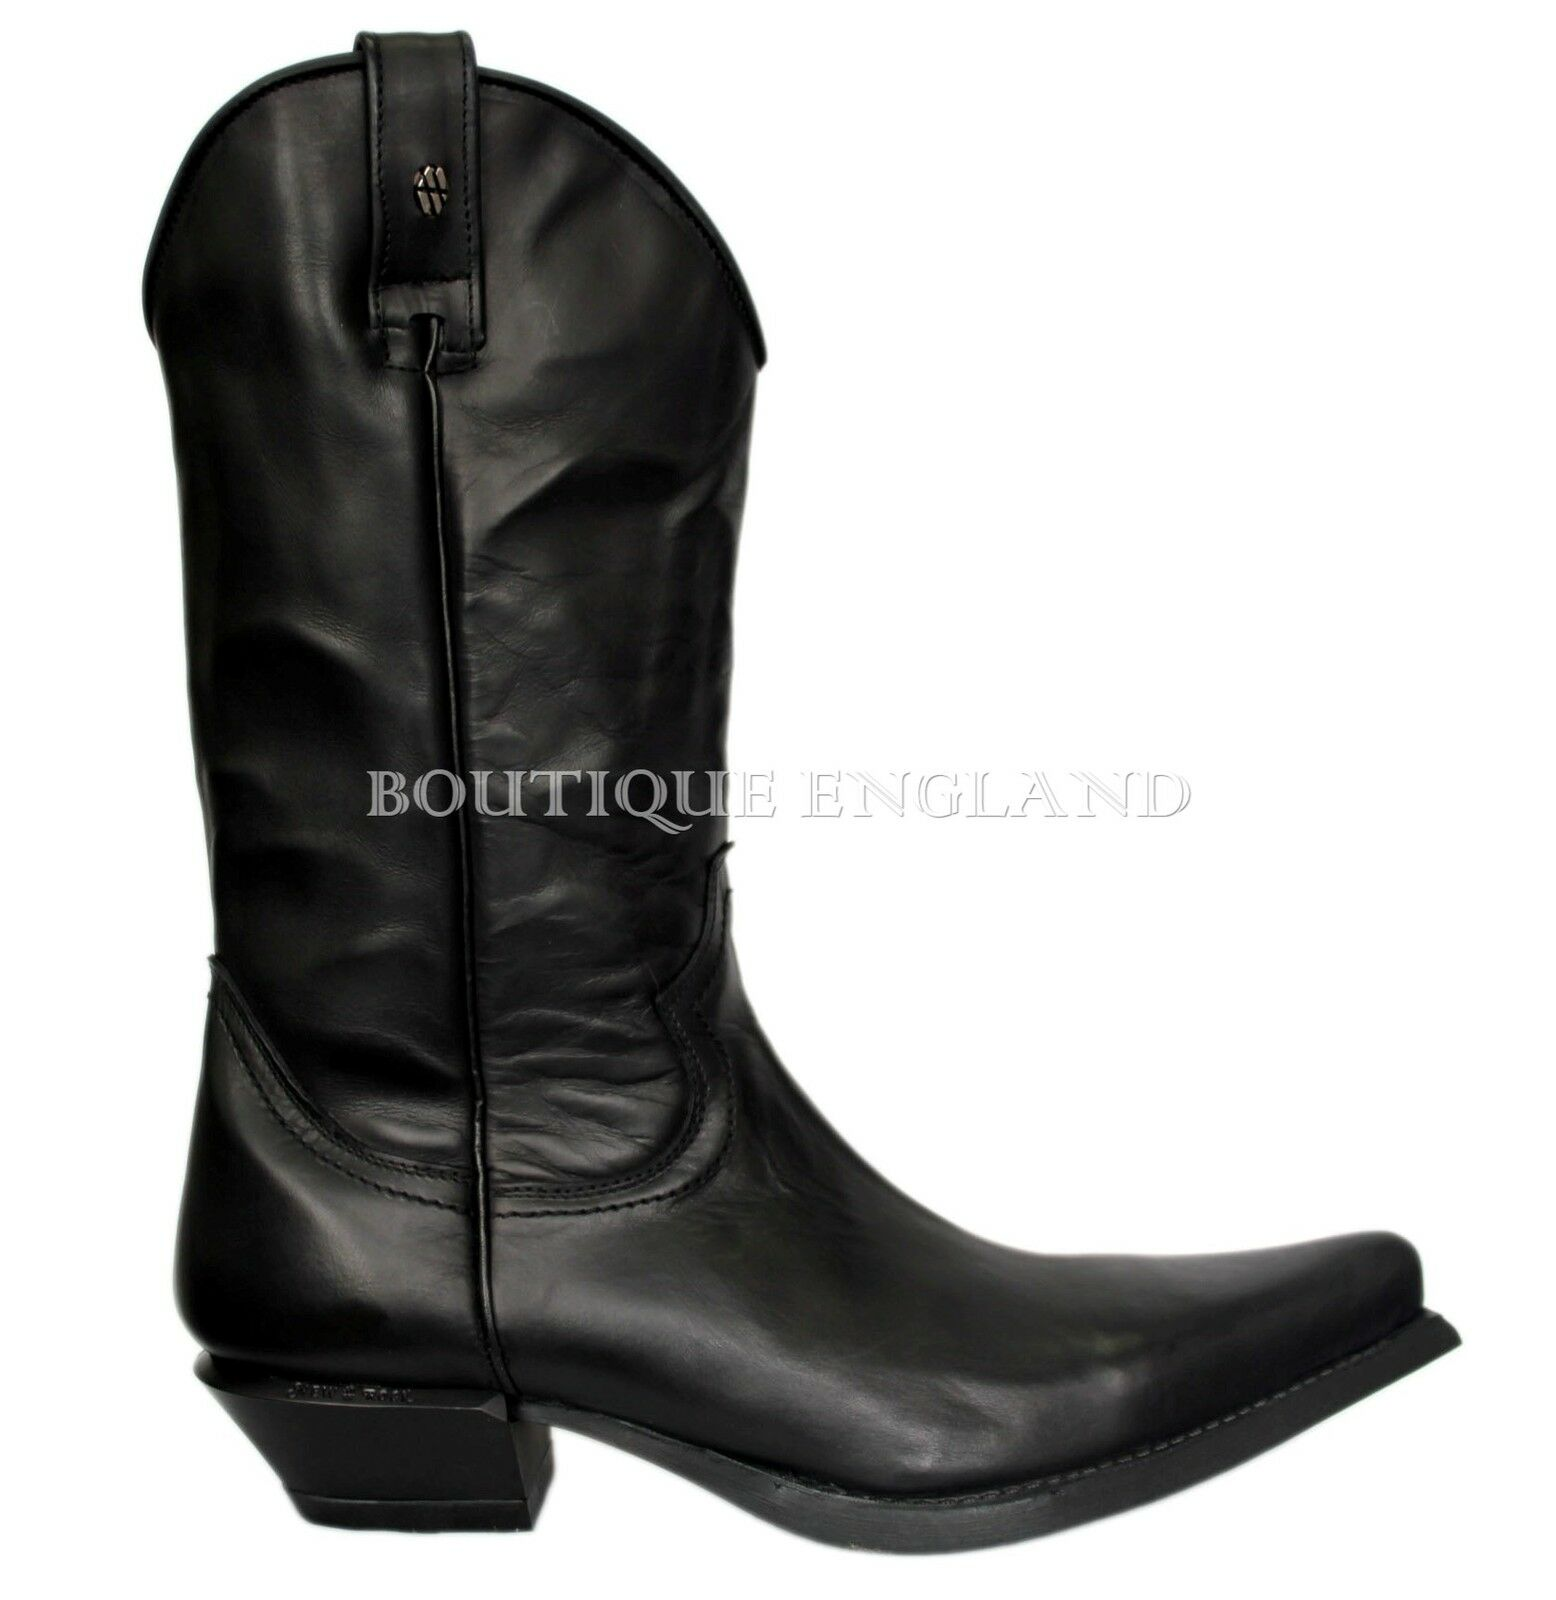 NEWROCK New Rock 7800 Black Plain Real Leather Cowboy Goth Biker Rock Boots